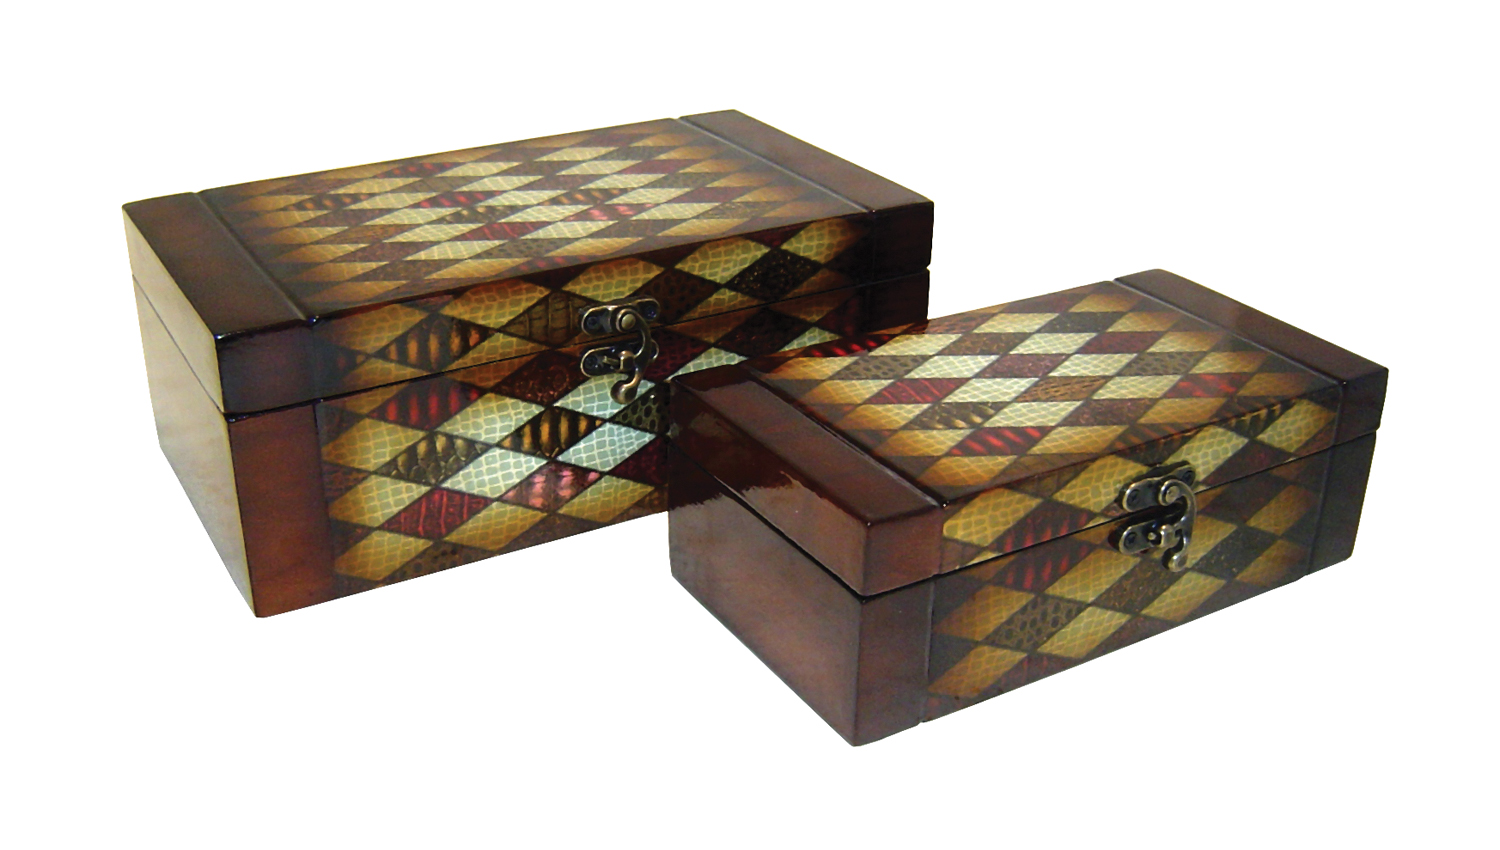 Cheungs Decorative Diamond Pattern Wooden Set of 2 Rectangular Keepsake Treasure Storage Box With Brass Latch at Sears.com